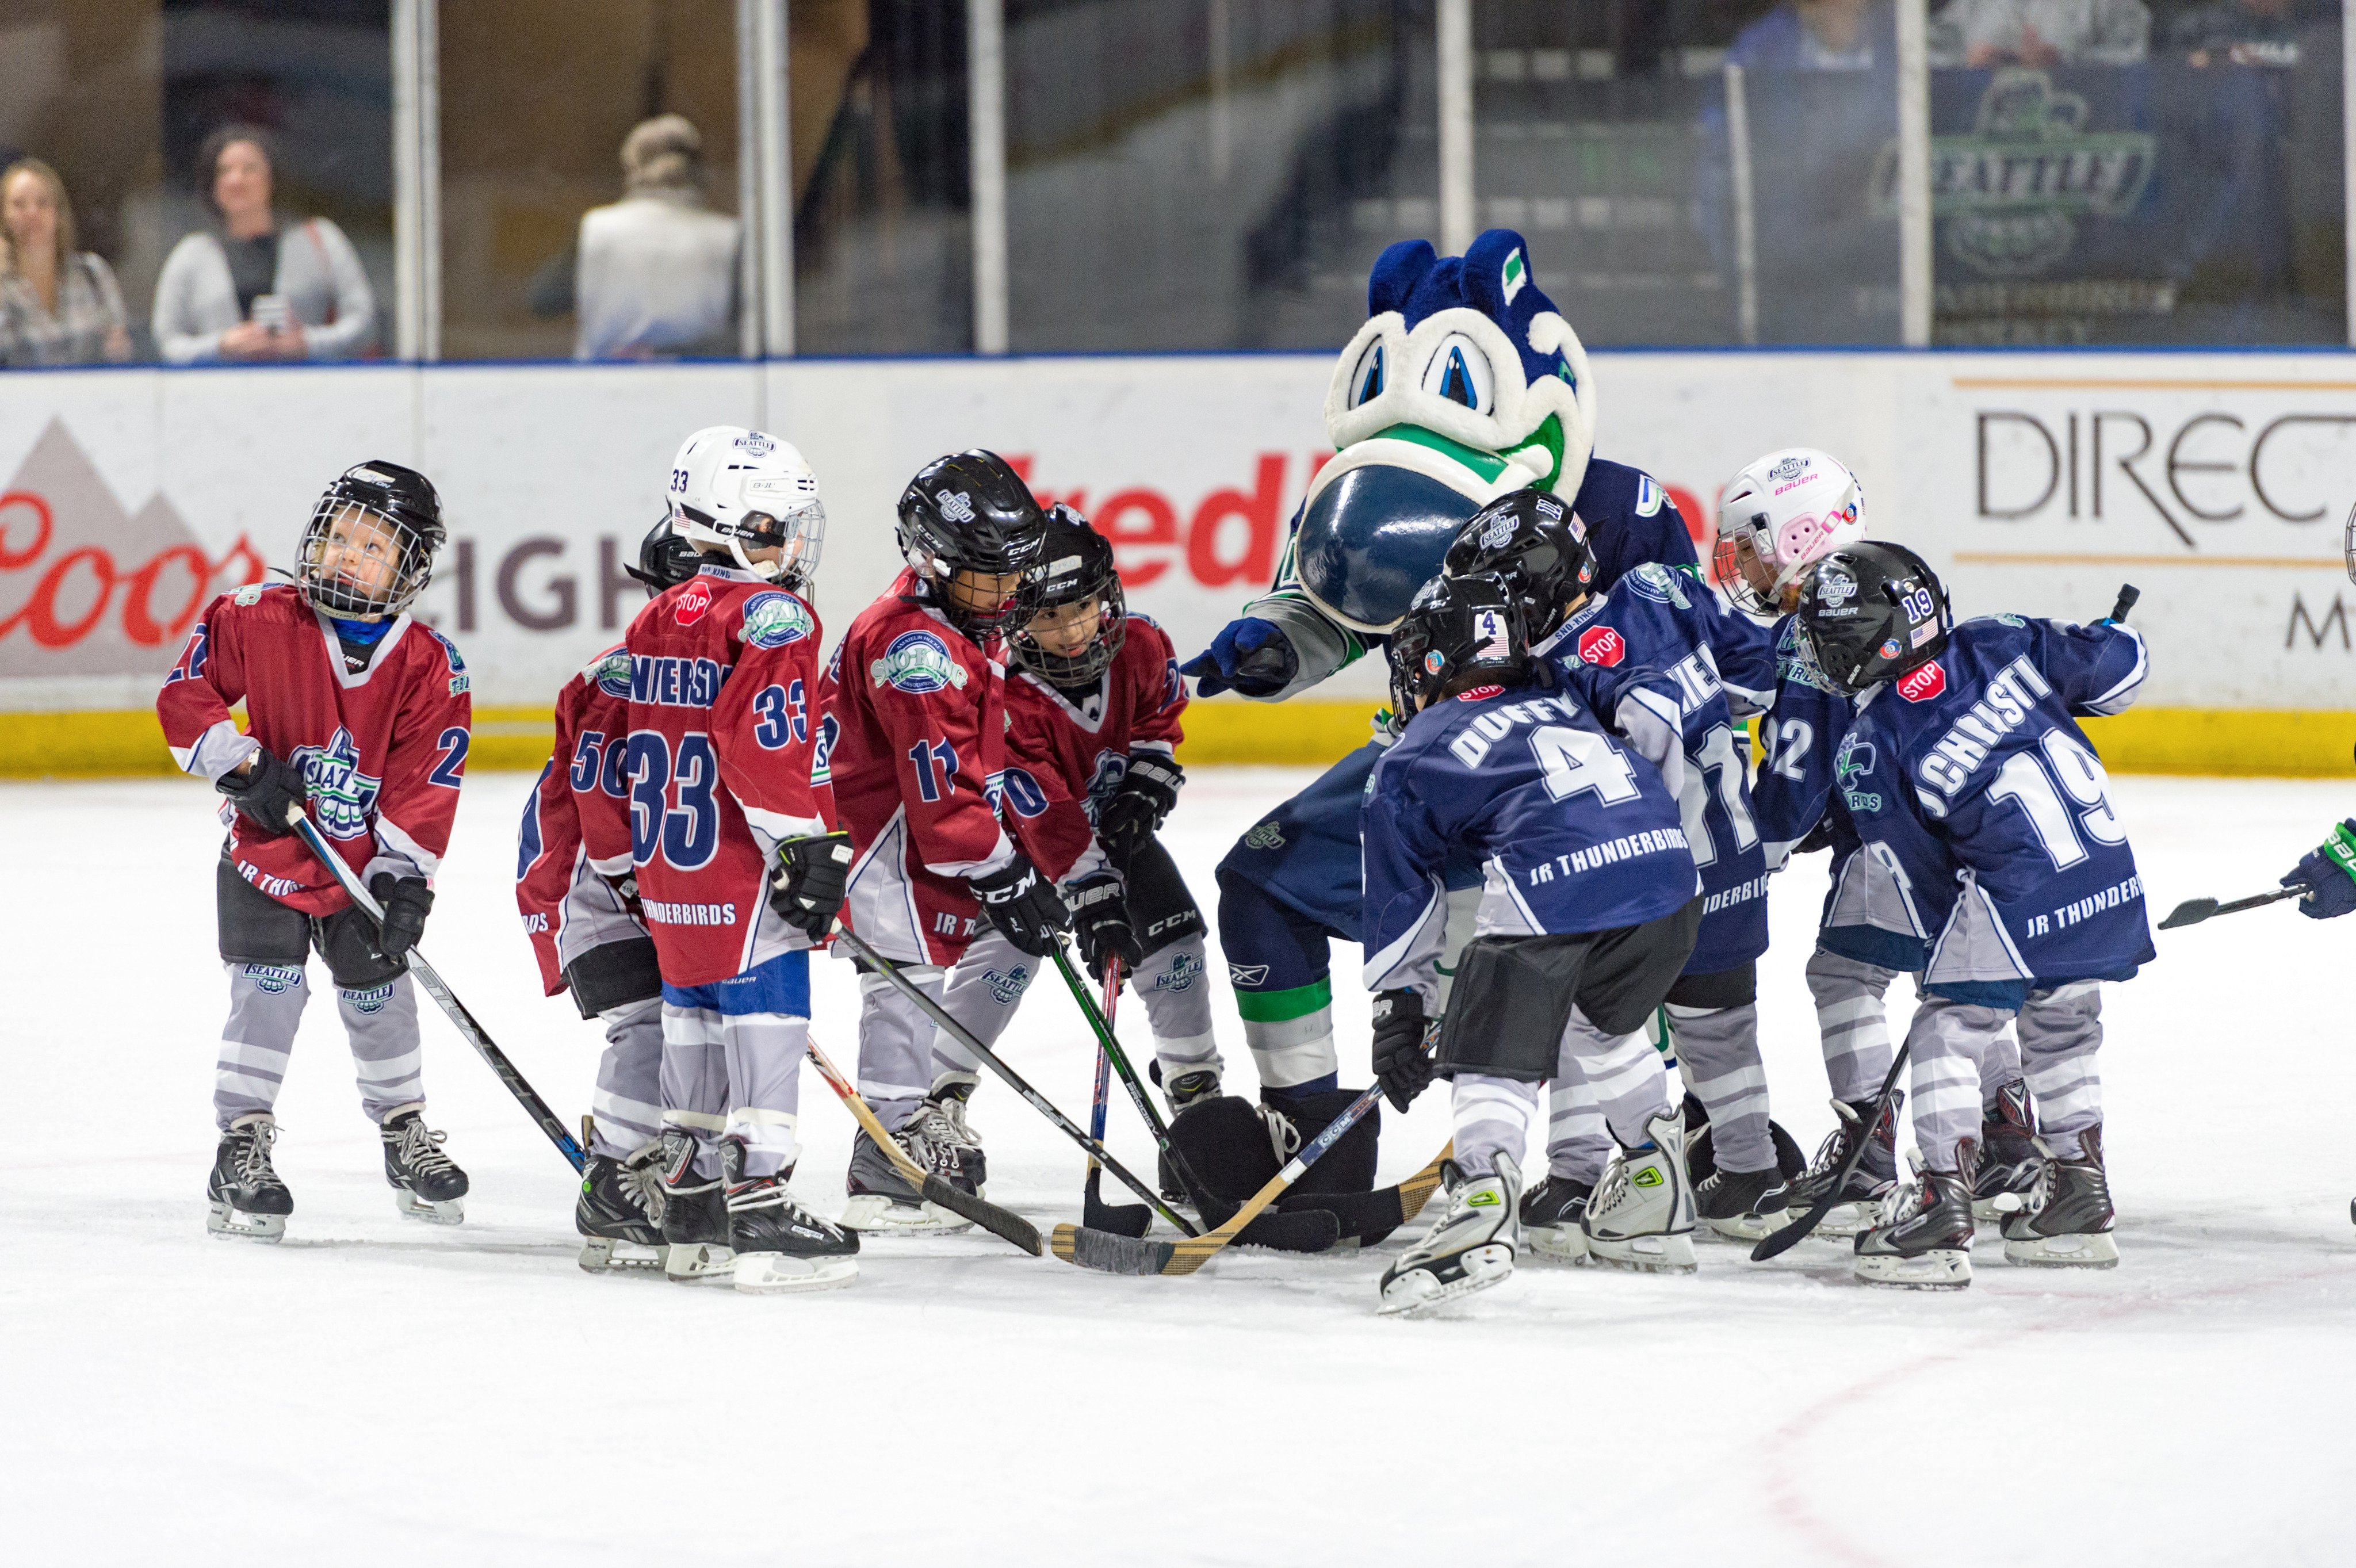 The Nhl S Arrival In Seattle Could Be A Boon For Local Youth Hockey